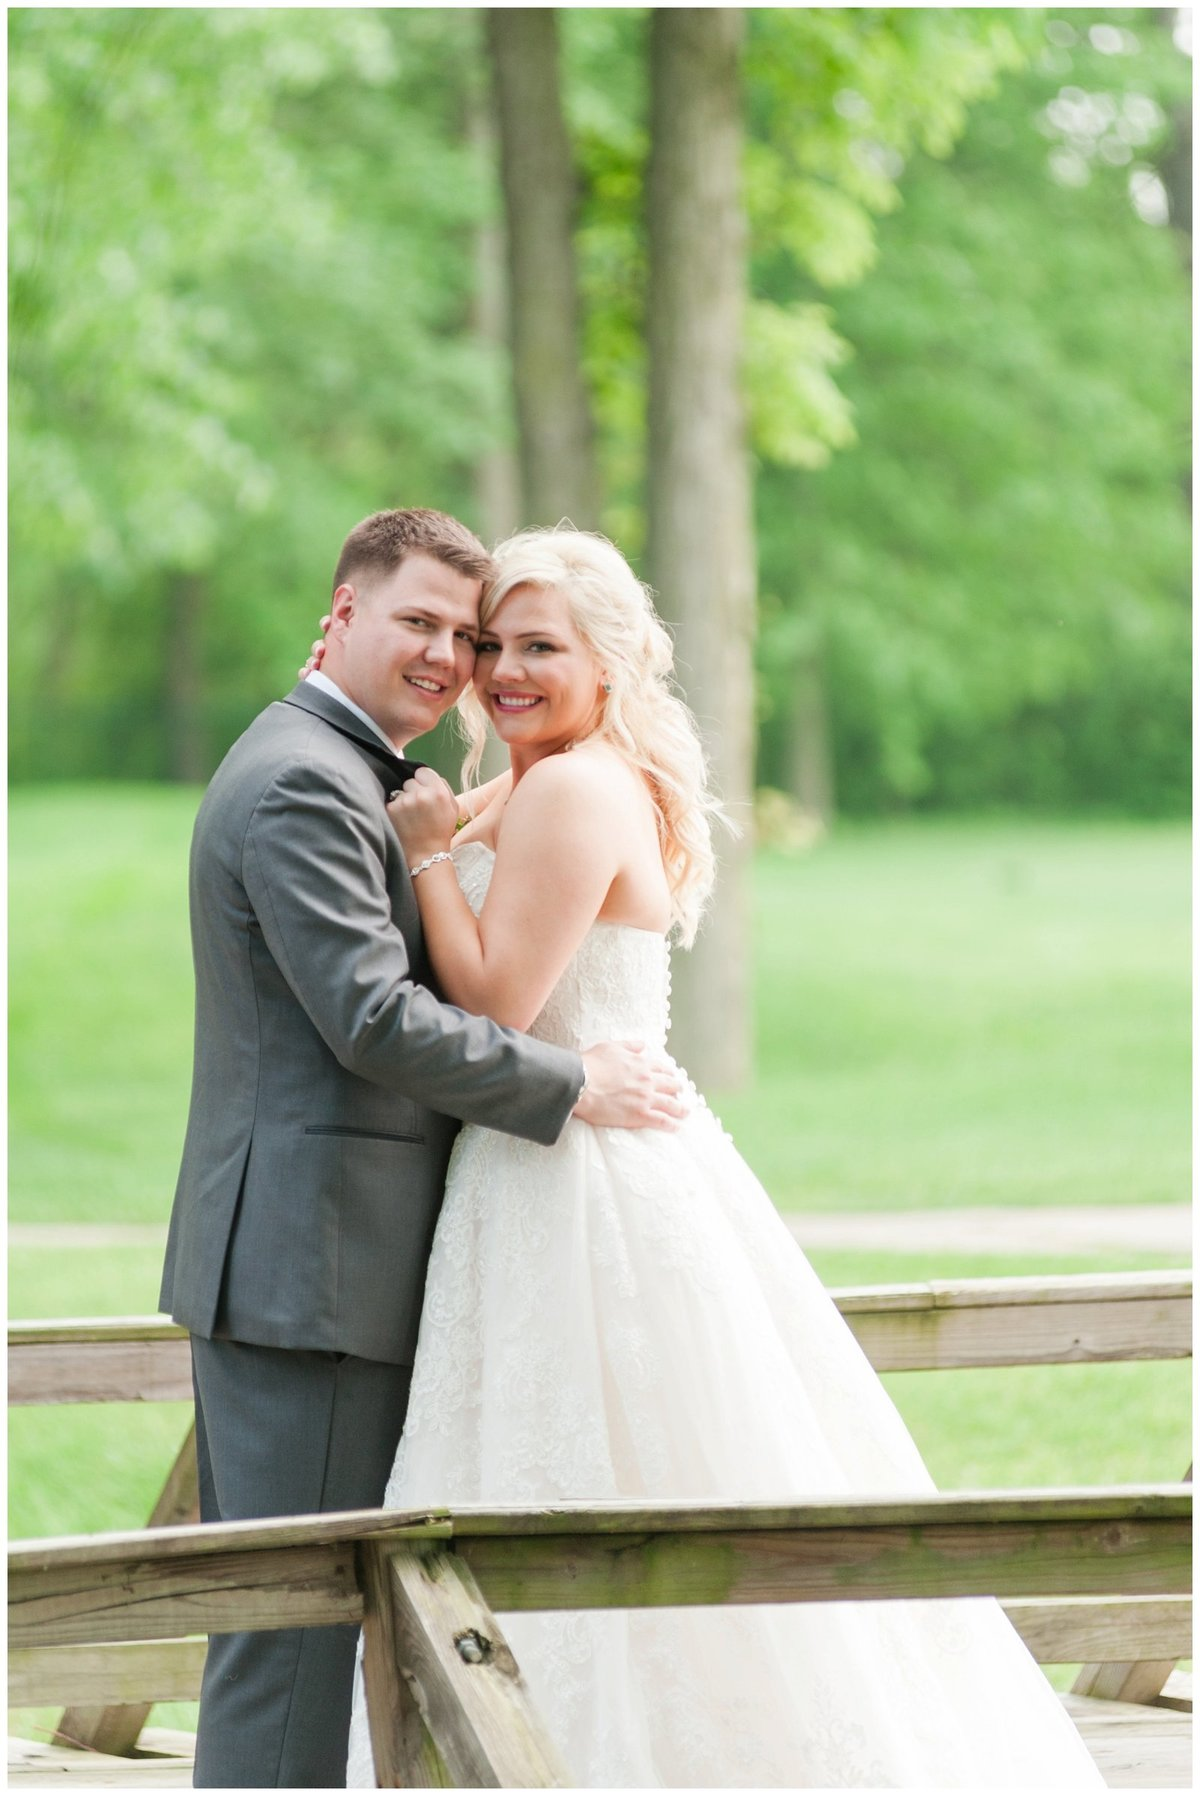 Heritage golf and country club wedding hilliard ohio wedding photos_0066